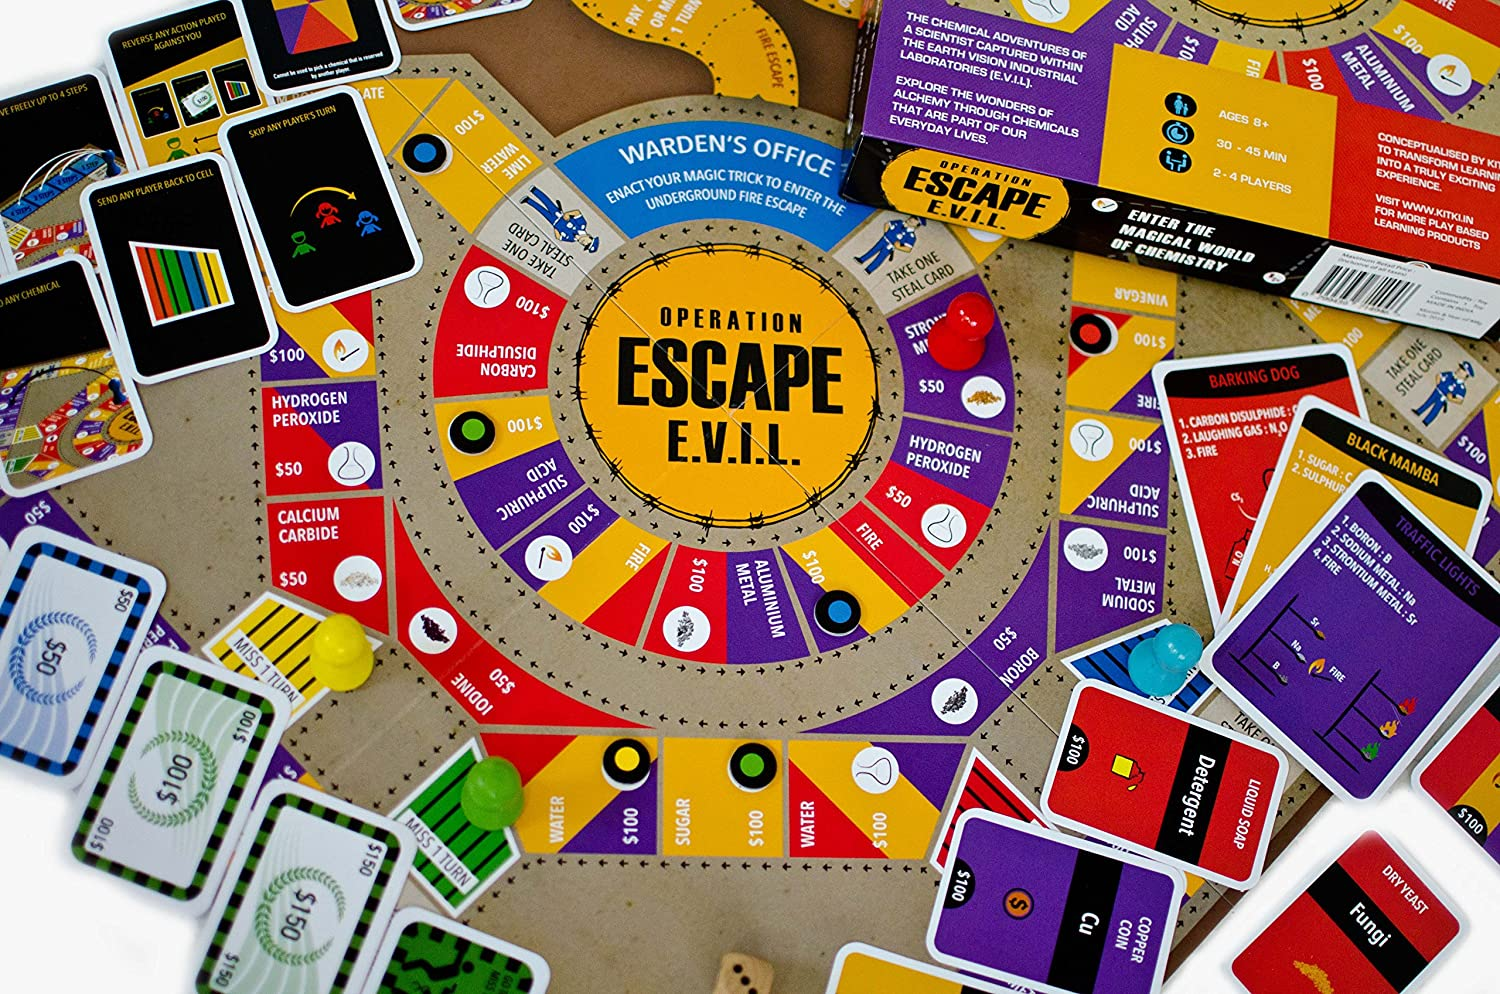 Escape-Evil-Fun-Board-Game-Based-on-Chemistry-and-Magic-for-Boys-and-Girls-5.jpg